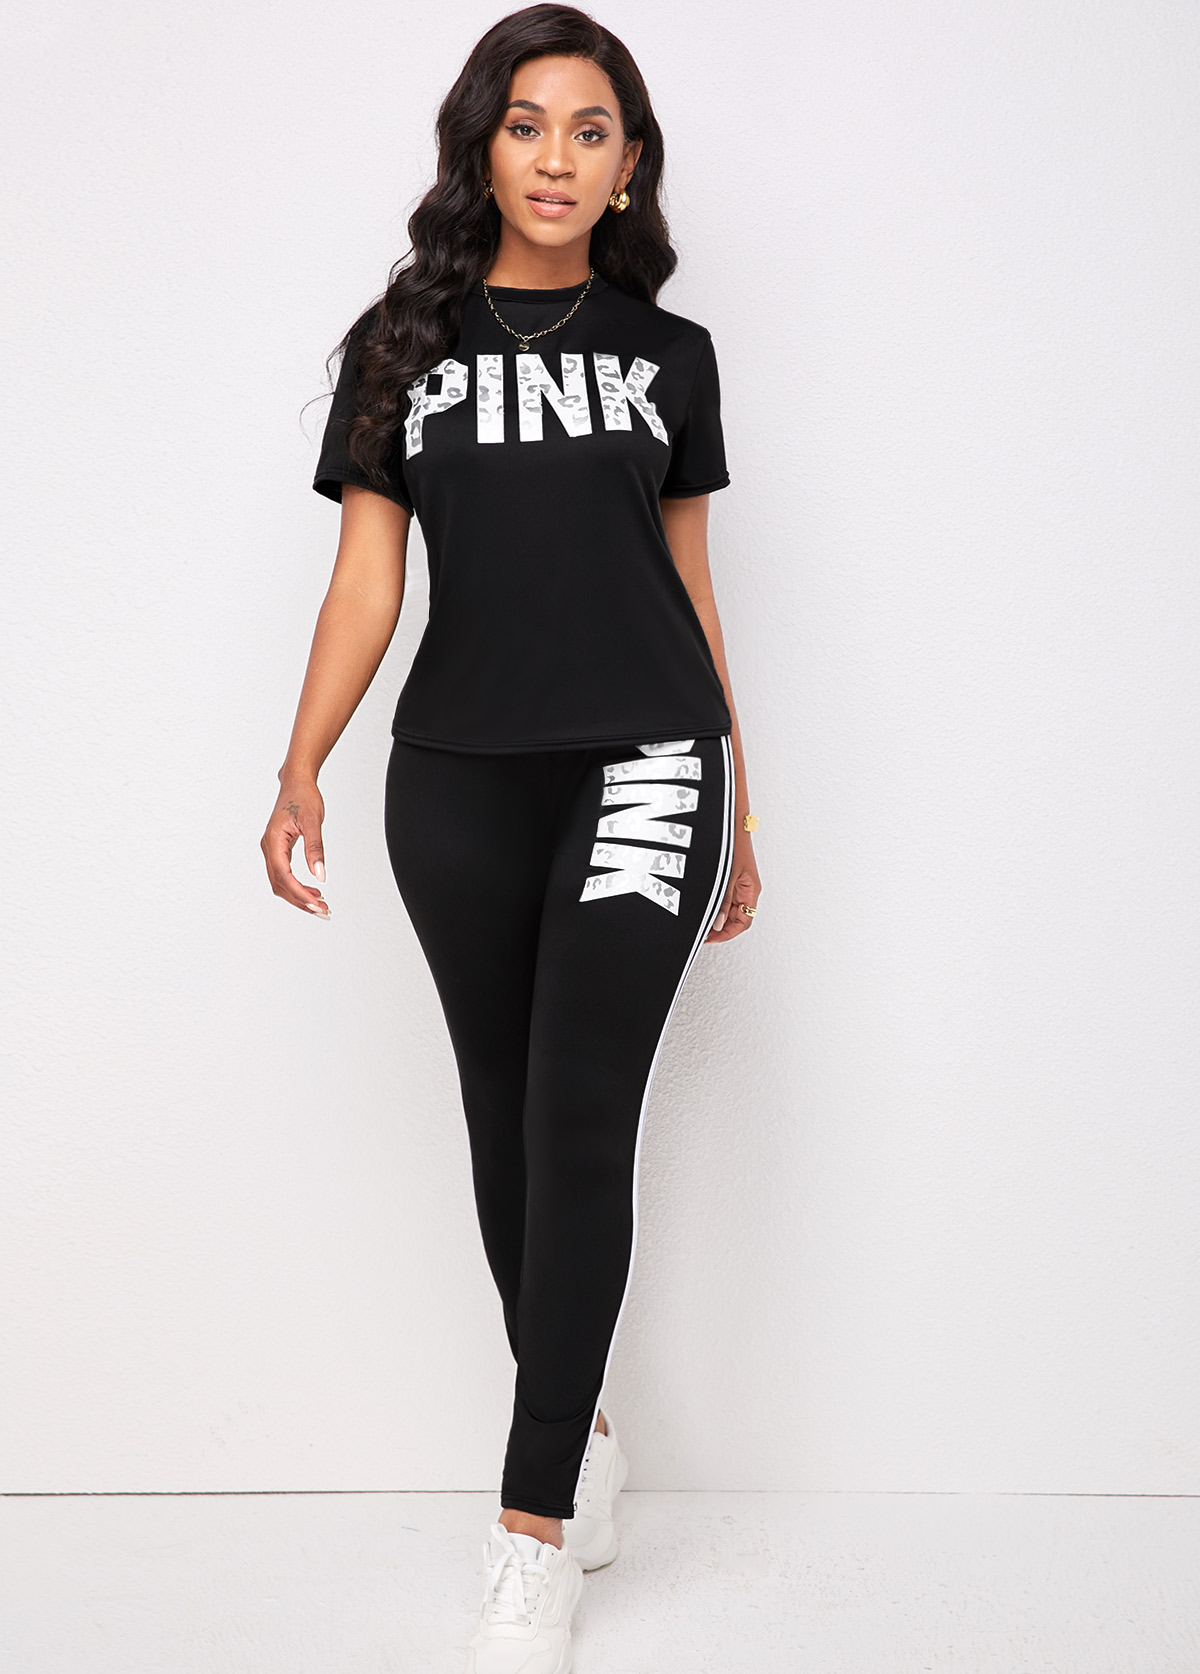 Short Sleeve Letter Print Black Sweatsuit